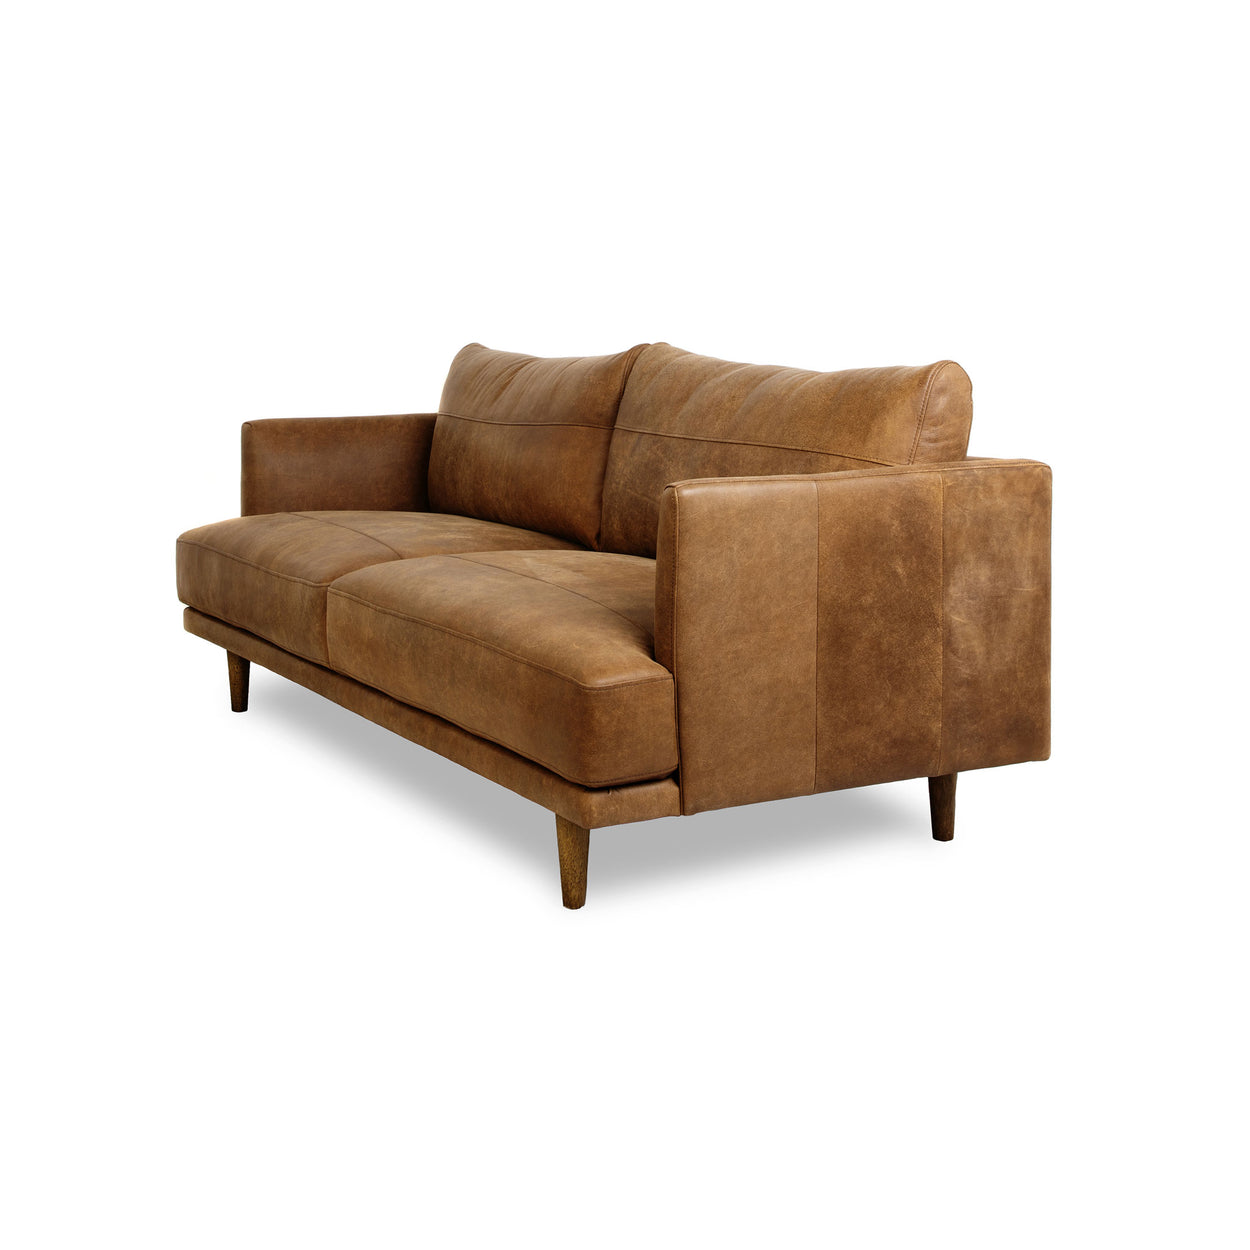 RUBY LEATHER - 3 Seat Sofa